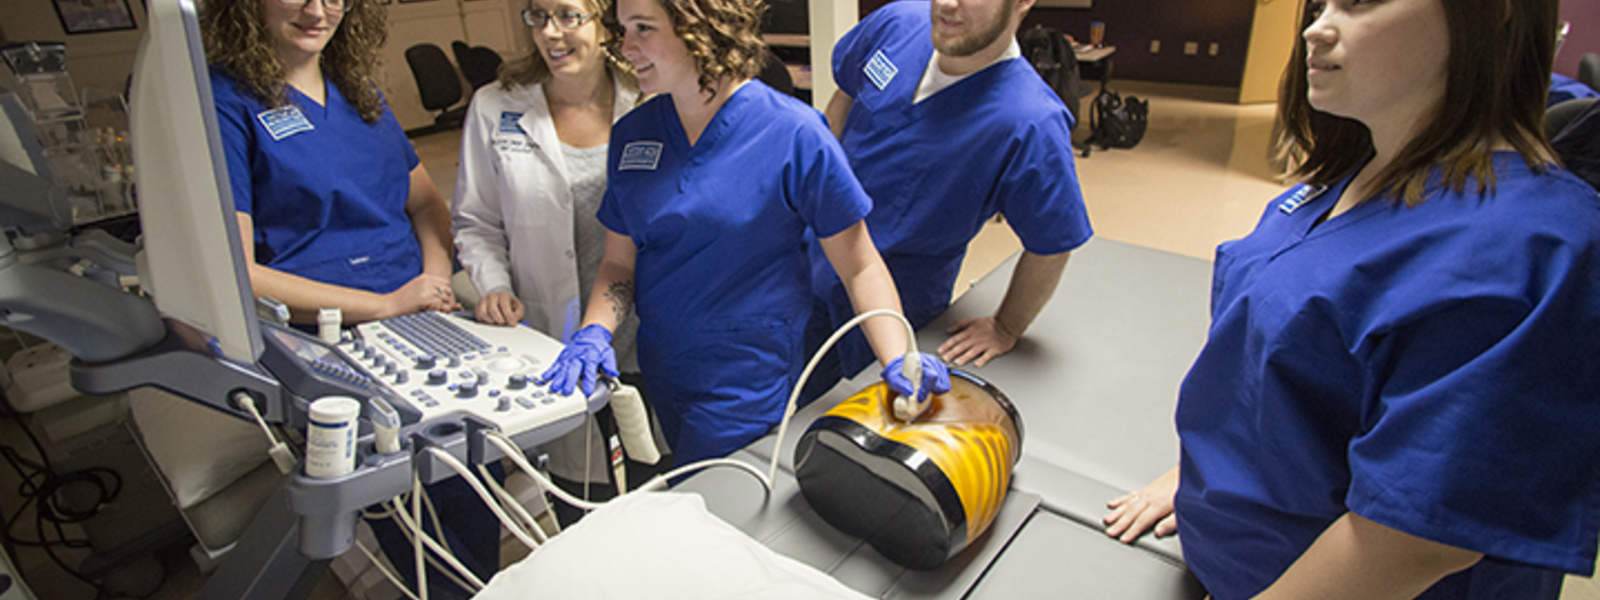 Students in Sonography lab scanning a model